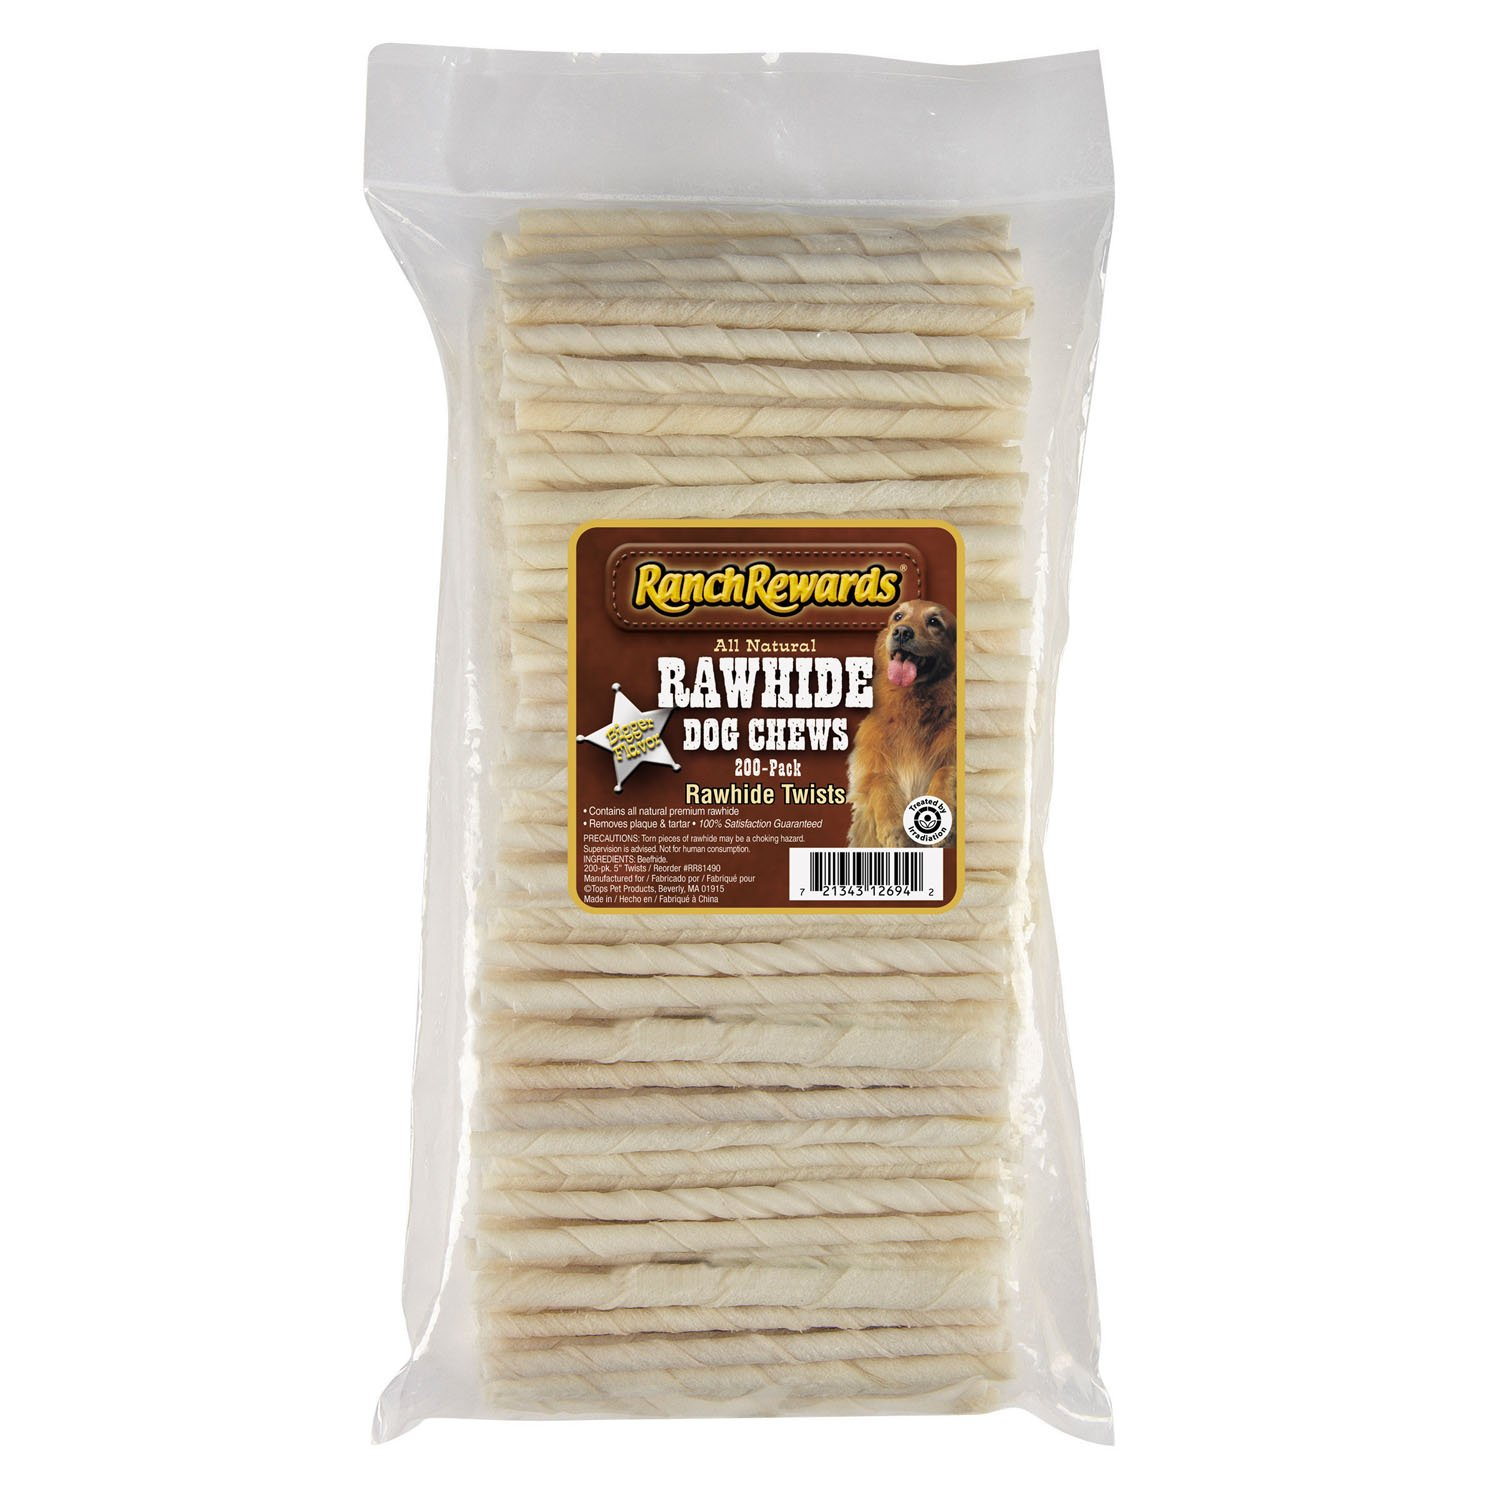 200- Pack Ranch Rewards Natural Rawhide Twists — Satisfying Chews for Dogs 5 , 200-Pack